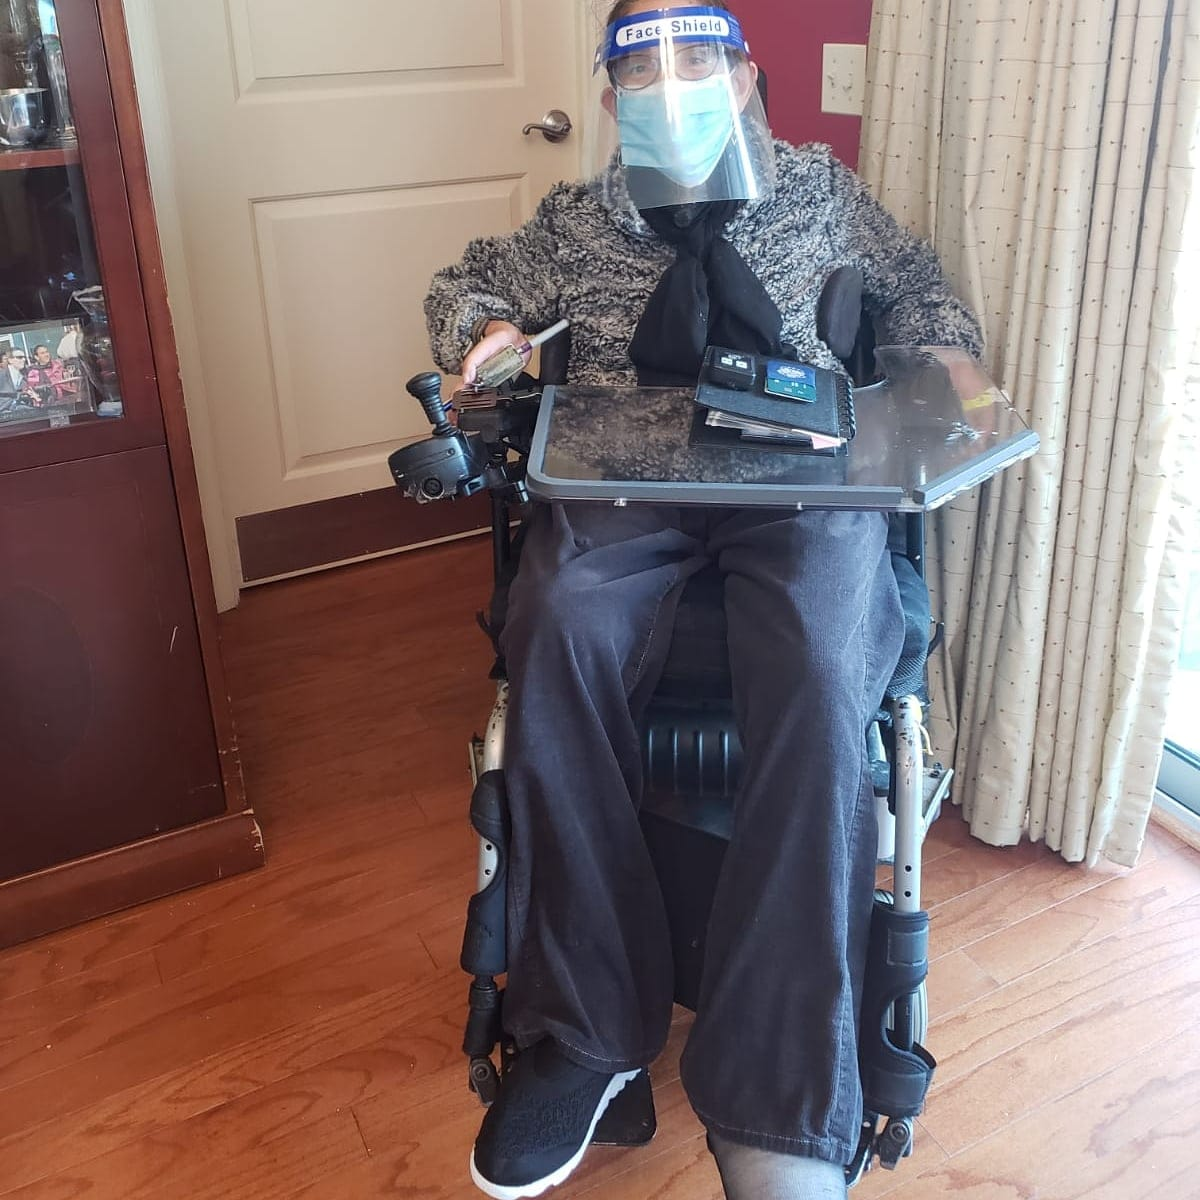 Sheri ready to venture out to the lymphedema clinic fully protected with her shield and mask, 12-20.